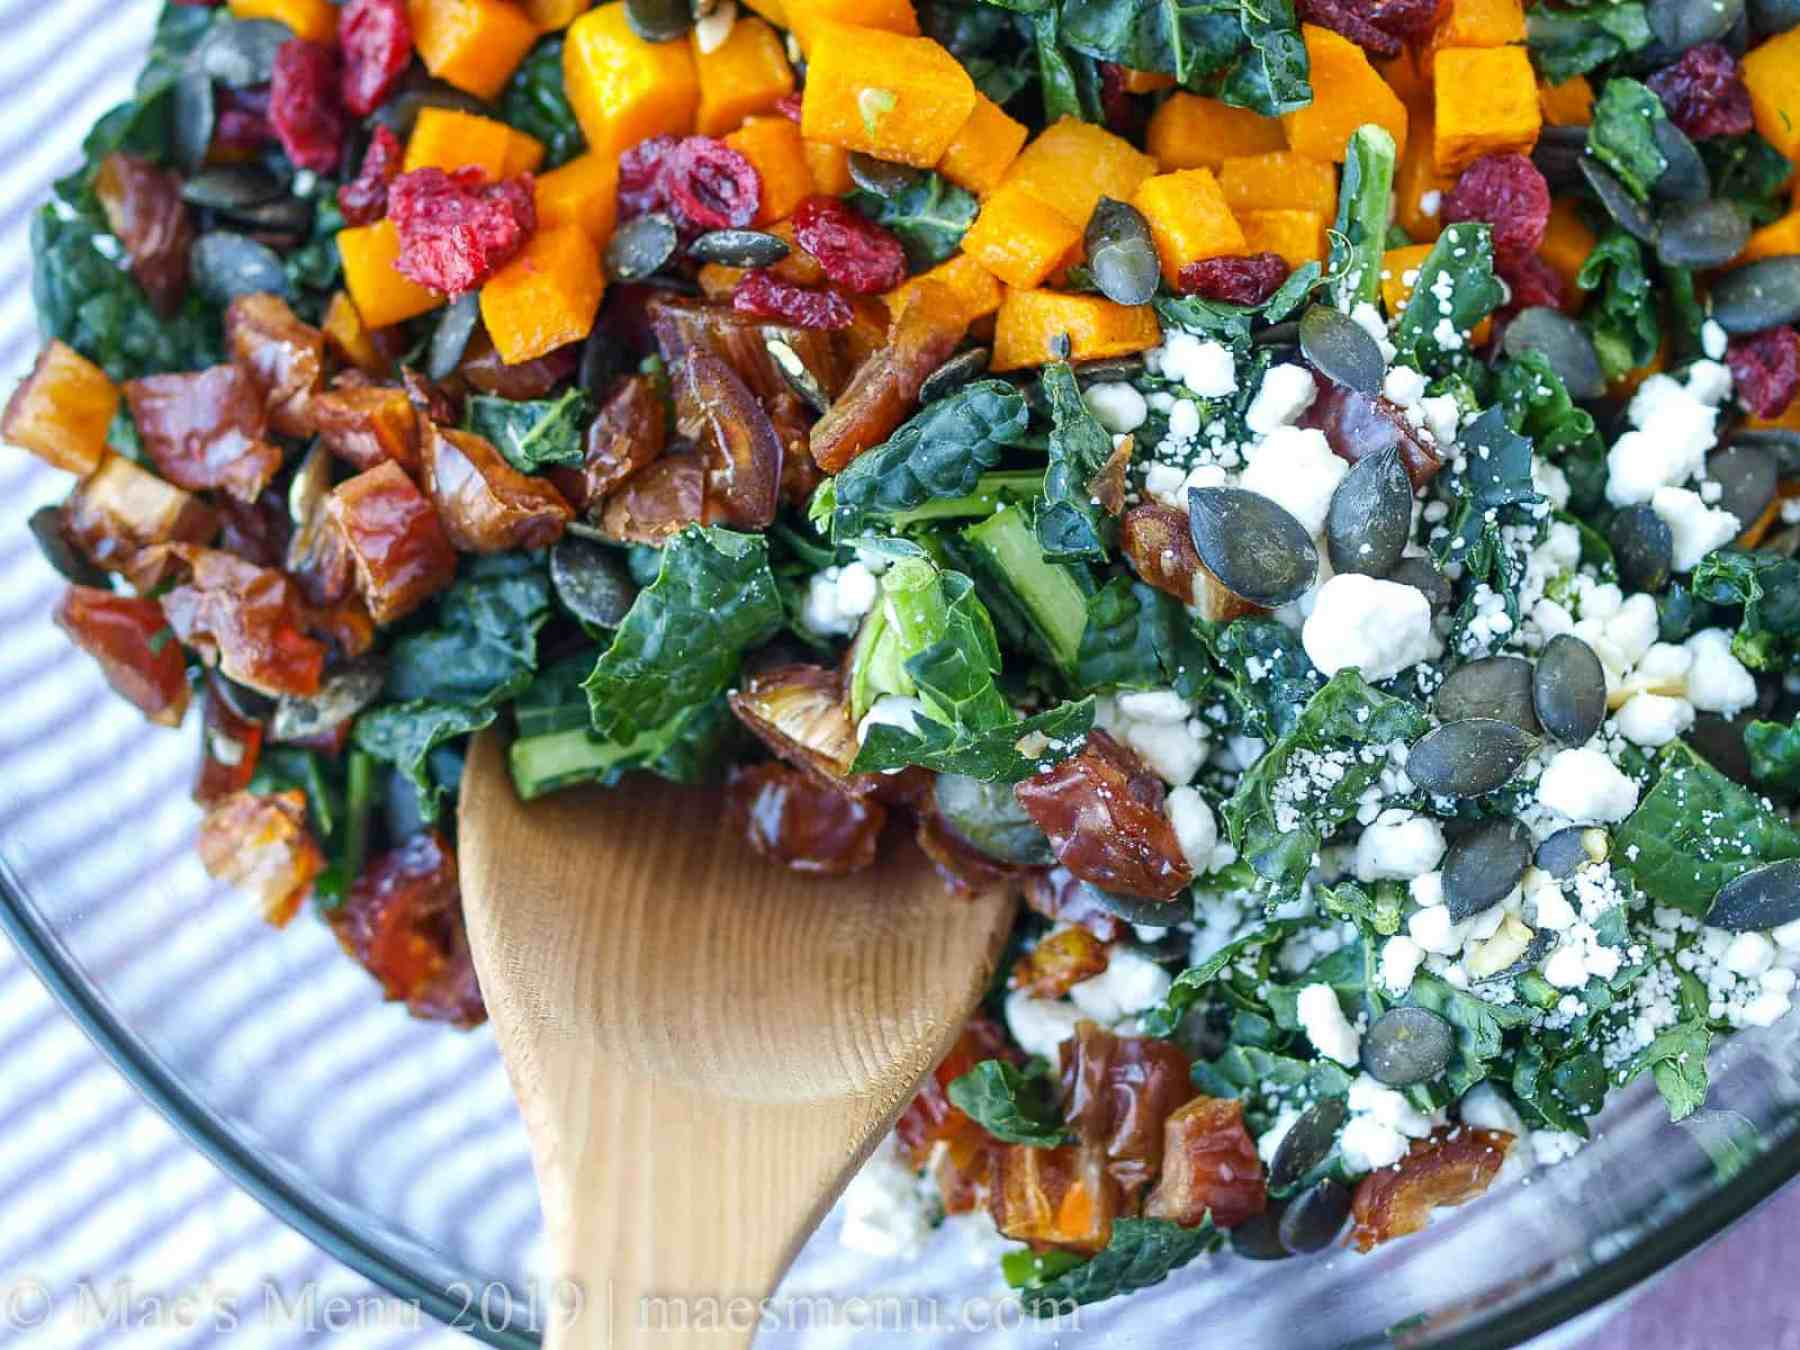 Up-close shot of lacinato kale with roasted butternut squash, the perfect holiday kale salad.